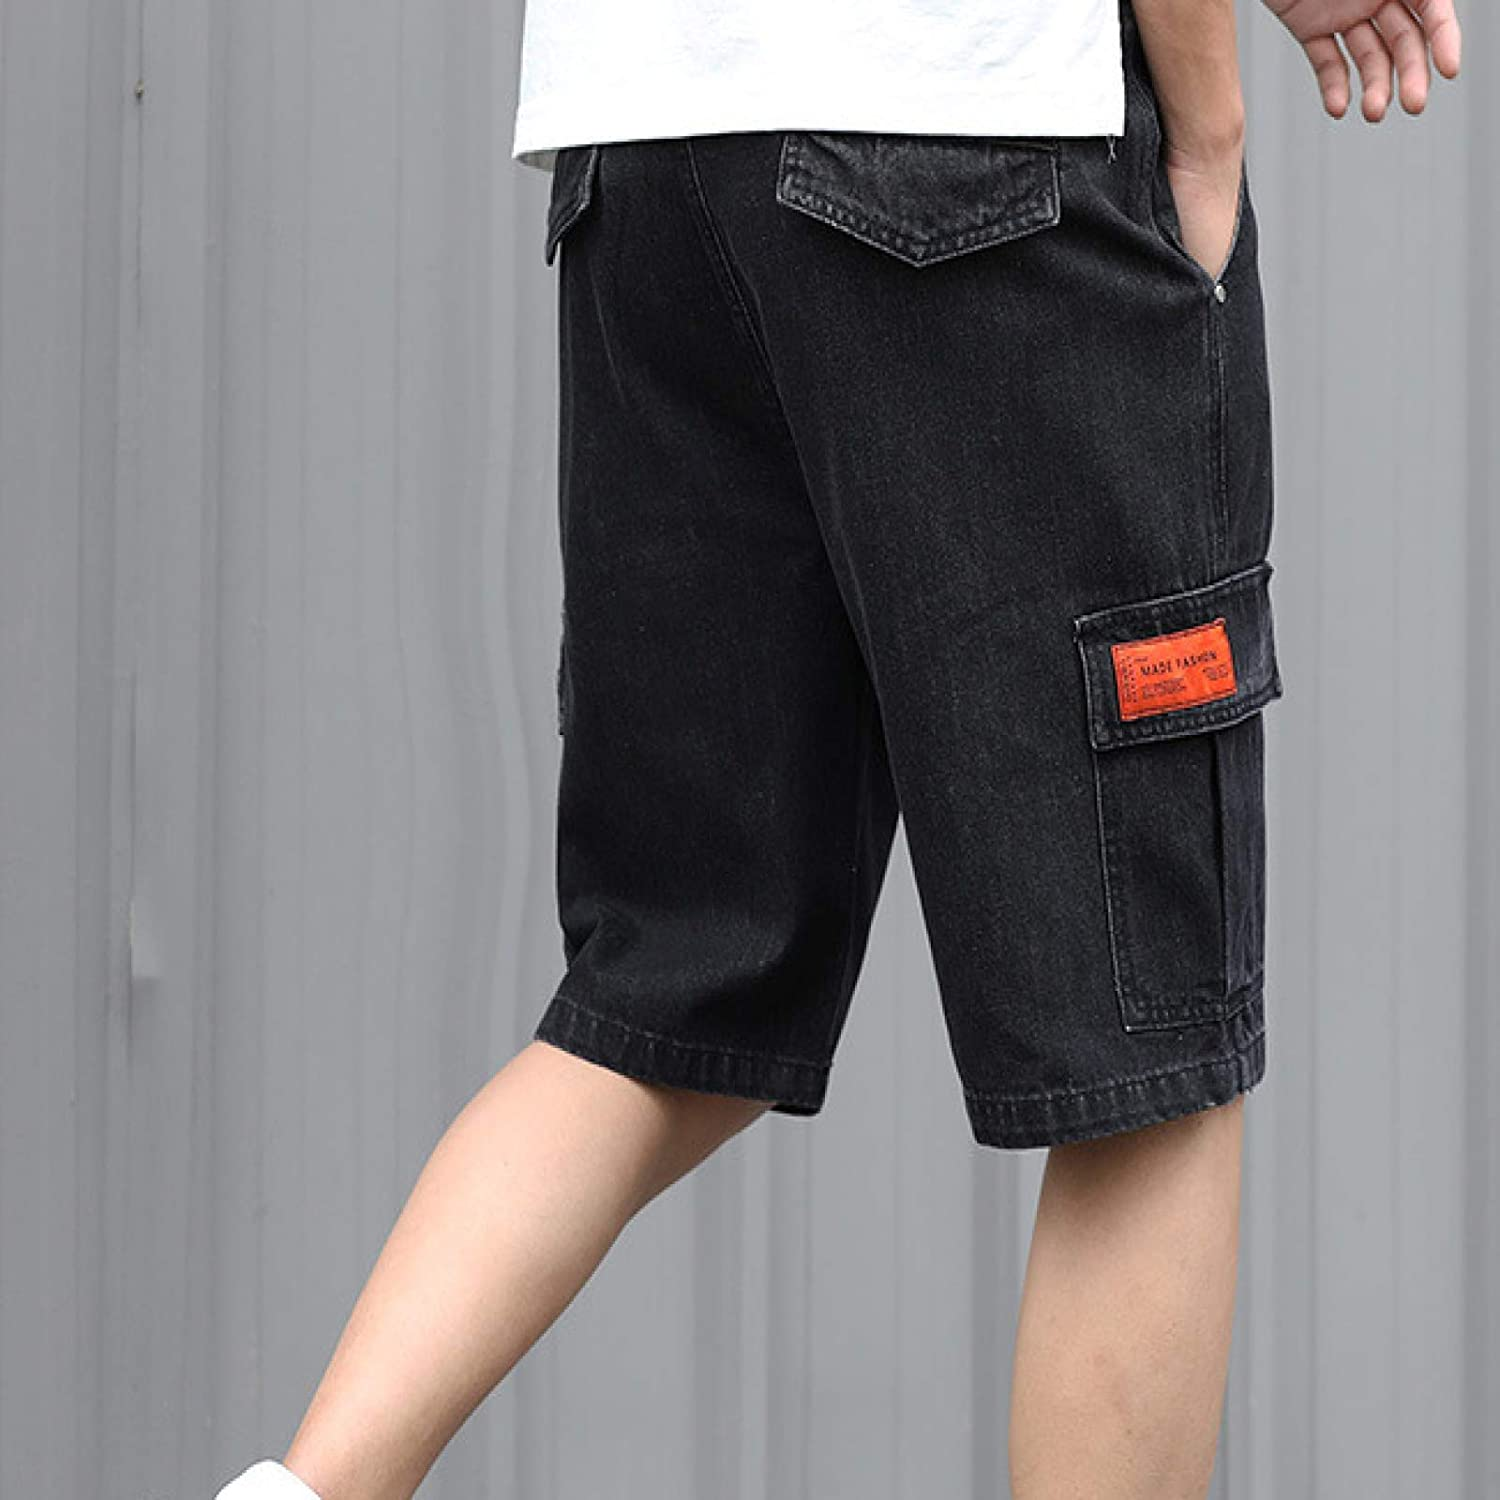 Beastle Men's Jeans Summer Retro Personality Ripped Denim Shorts Trendy Casual Fashion